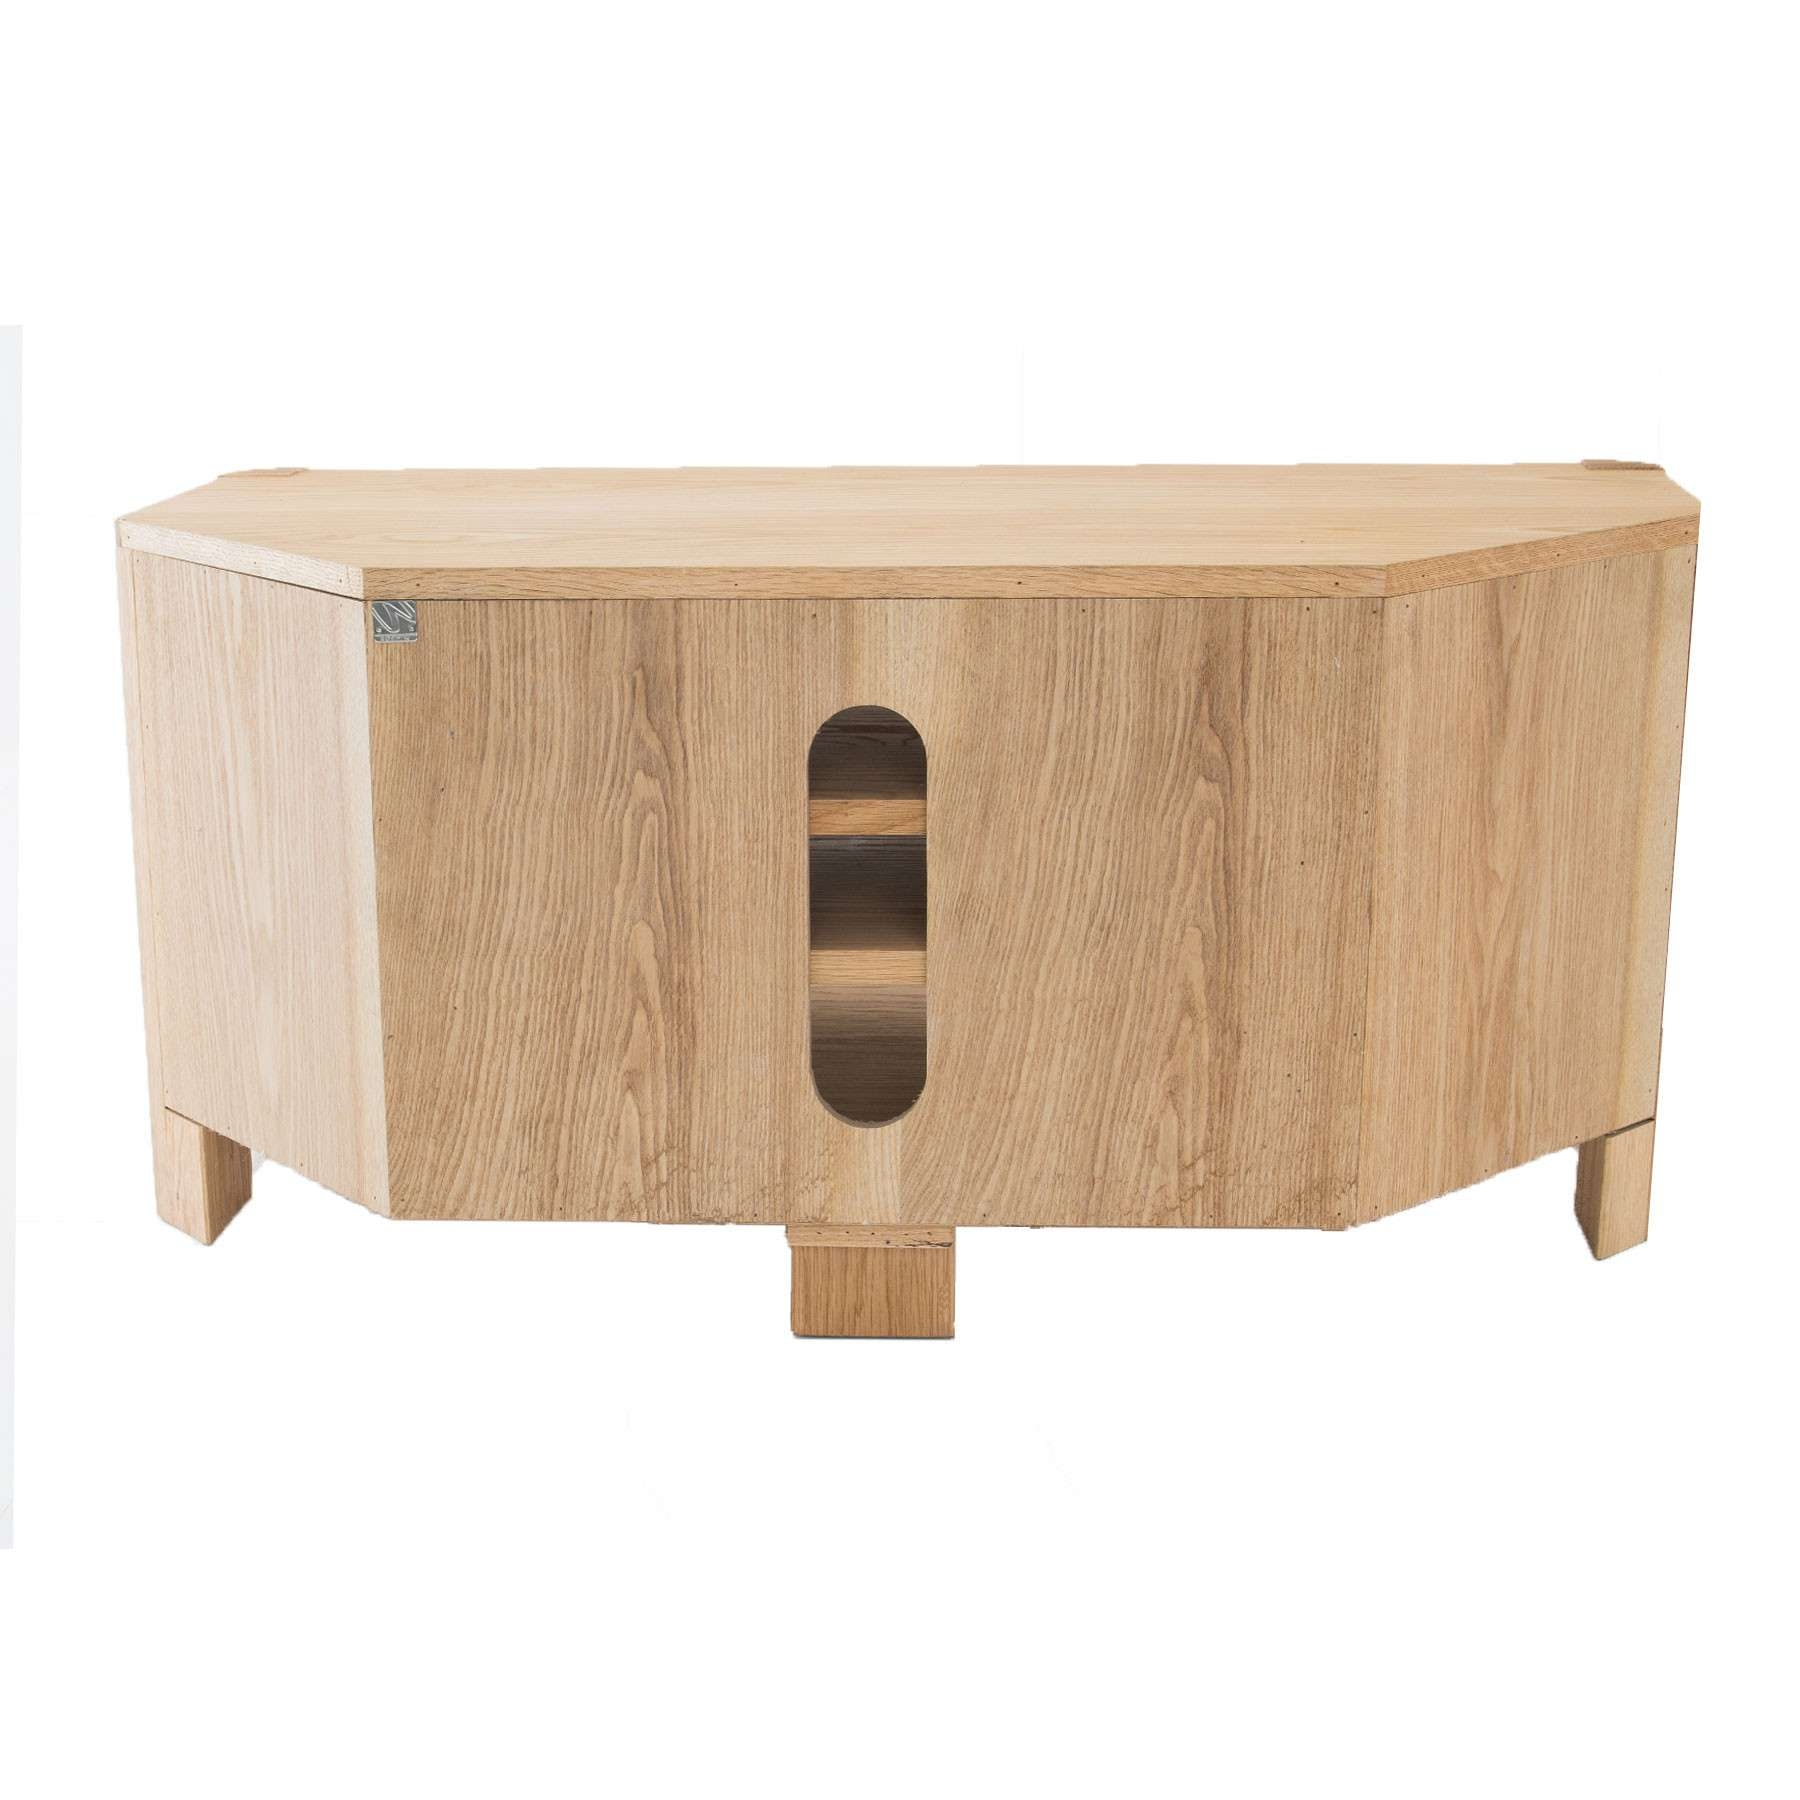 "Oslo Light Oak Corner Tv Stand For Up To 44"" Tvs With Light Oak Corner Tv Stands (View 9 of 20)"